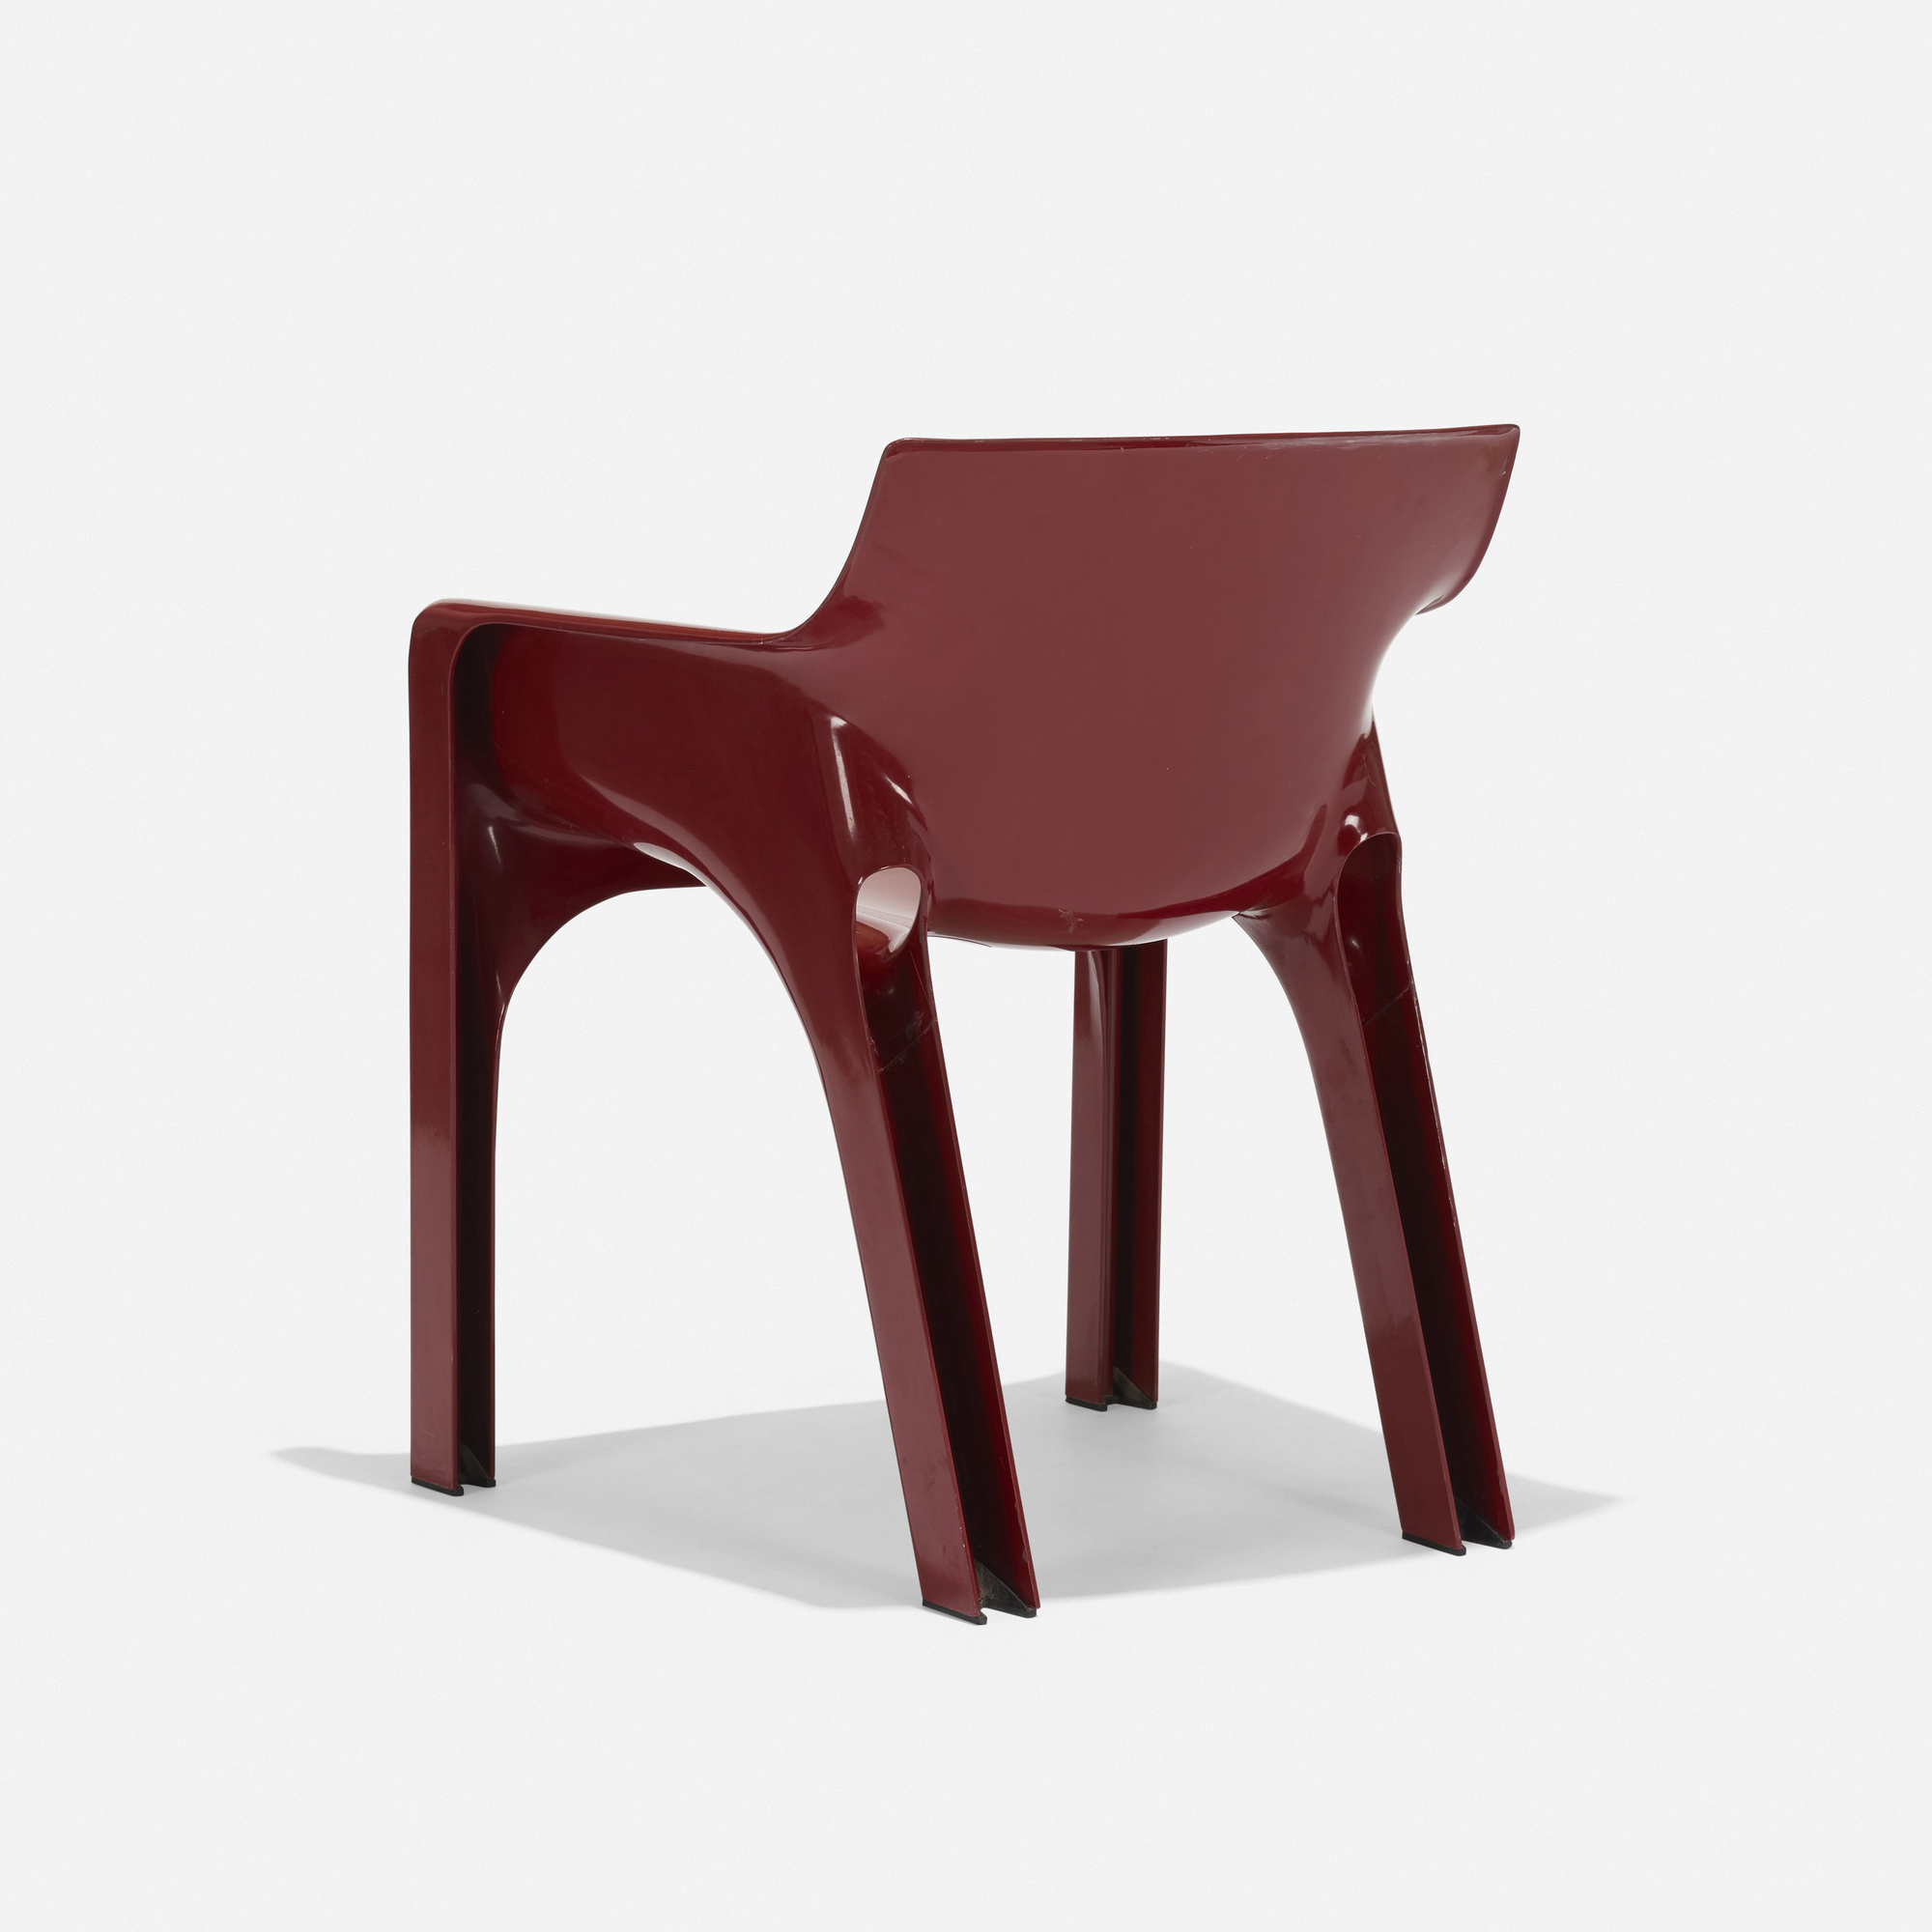 406: Vico Magistretti / Gaudi chair (3 of 4)